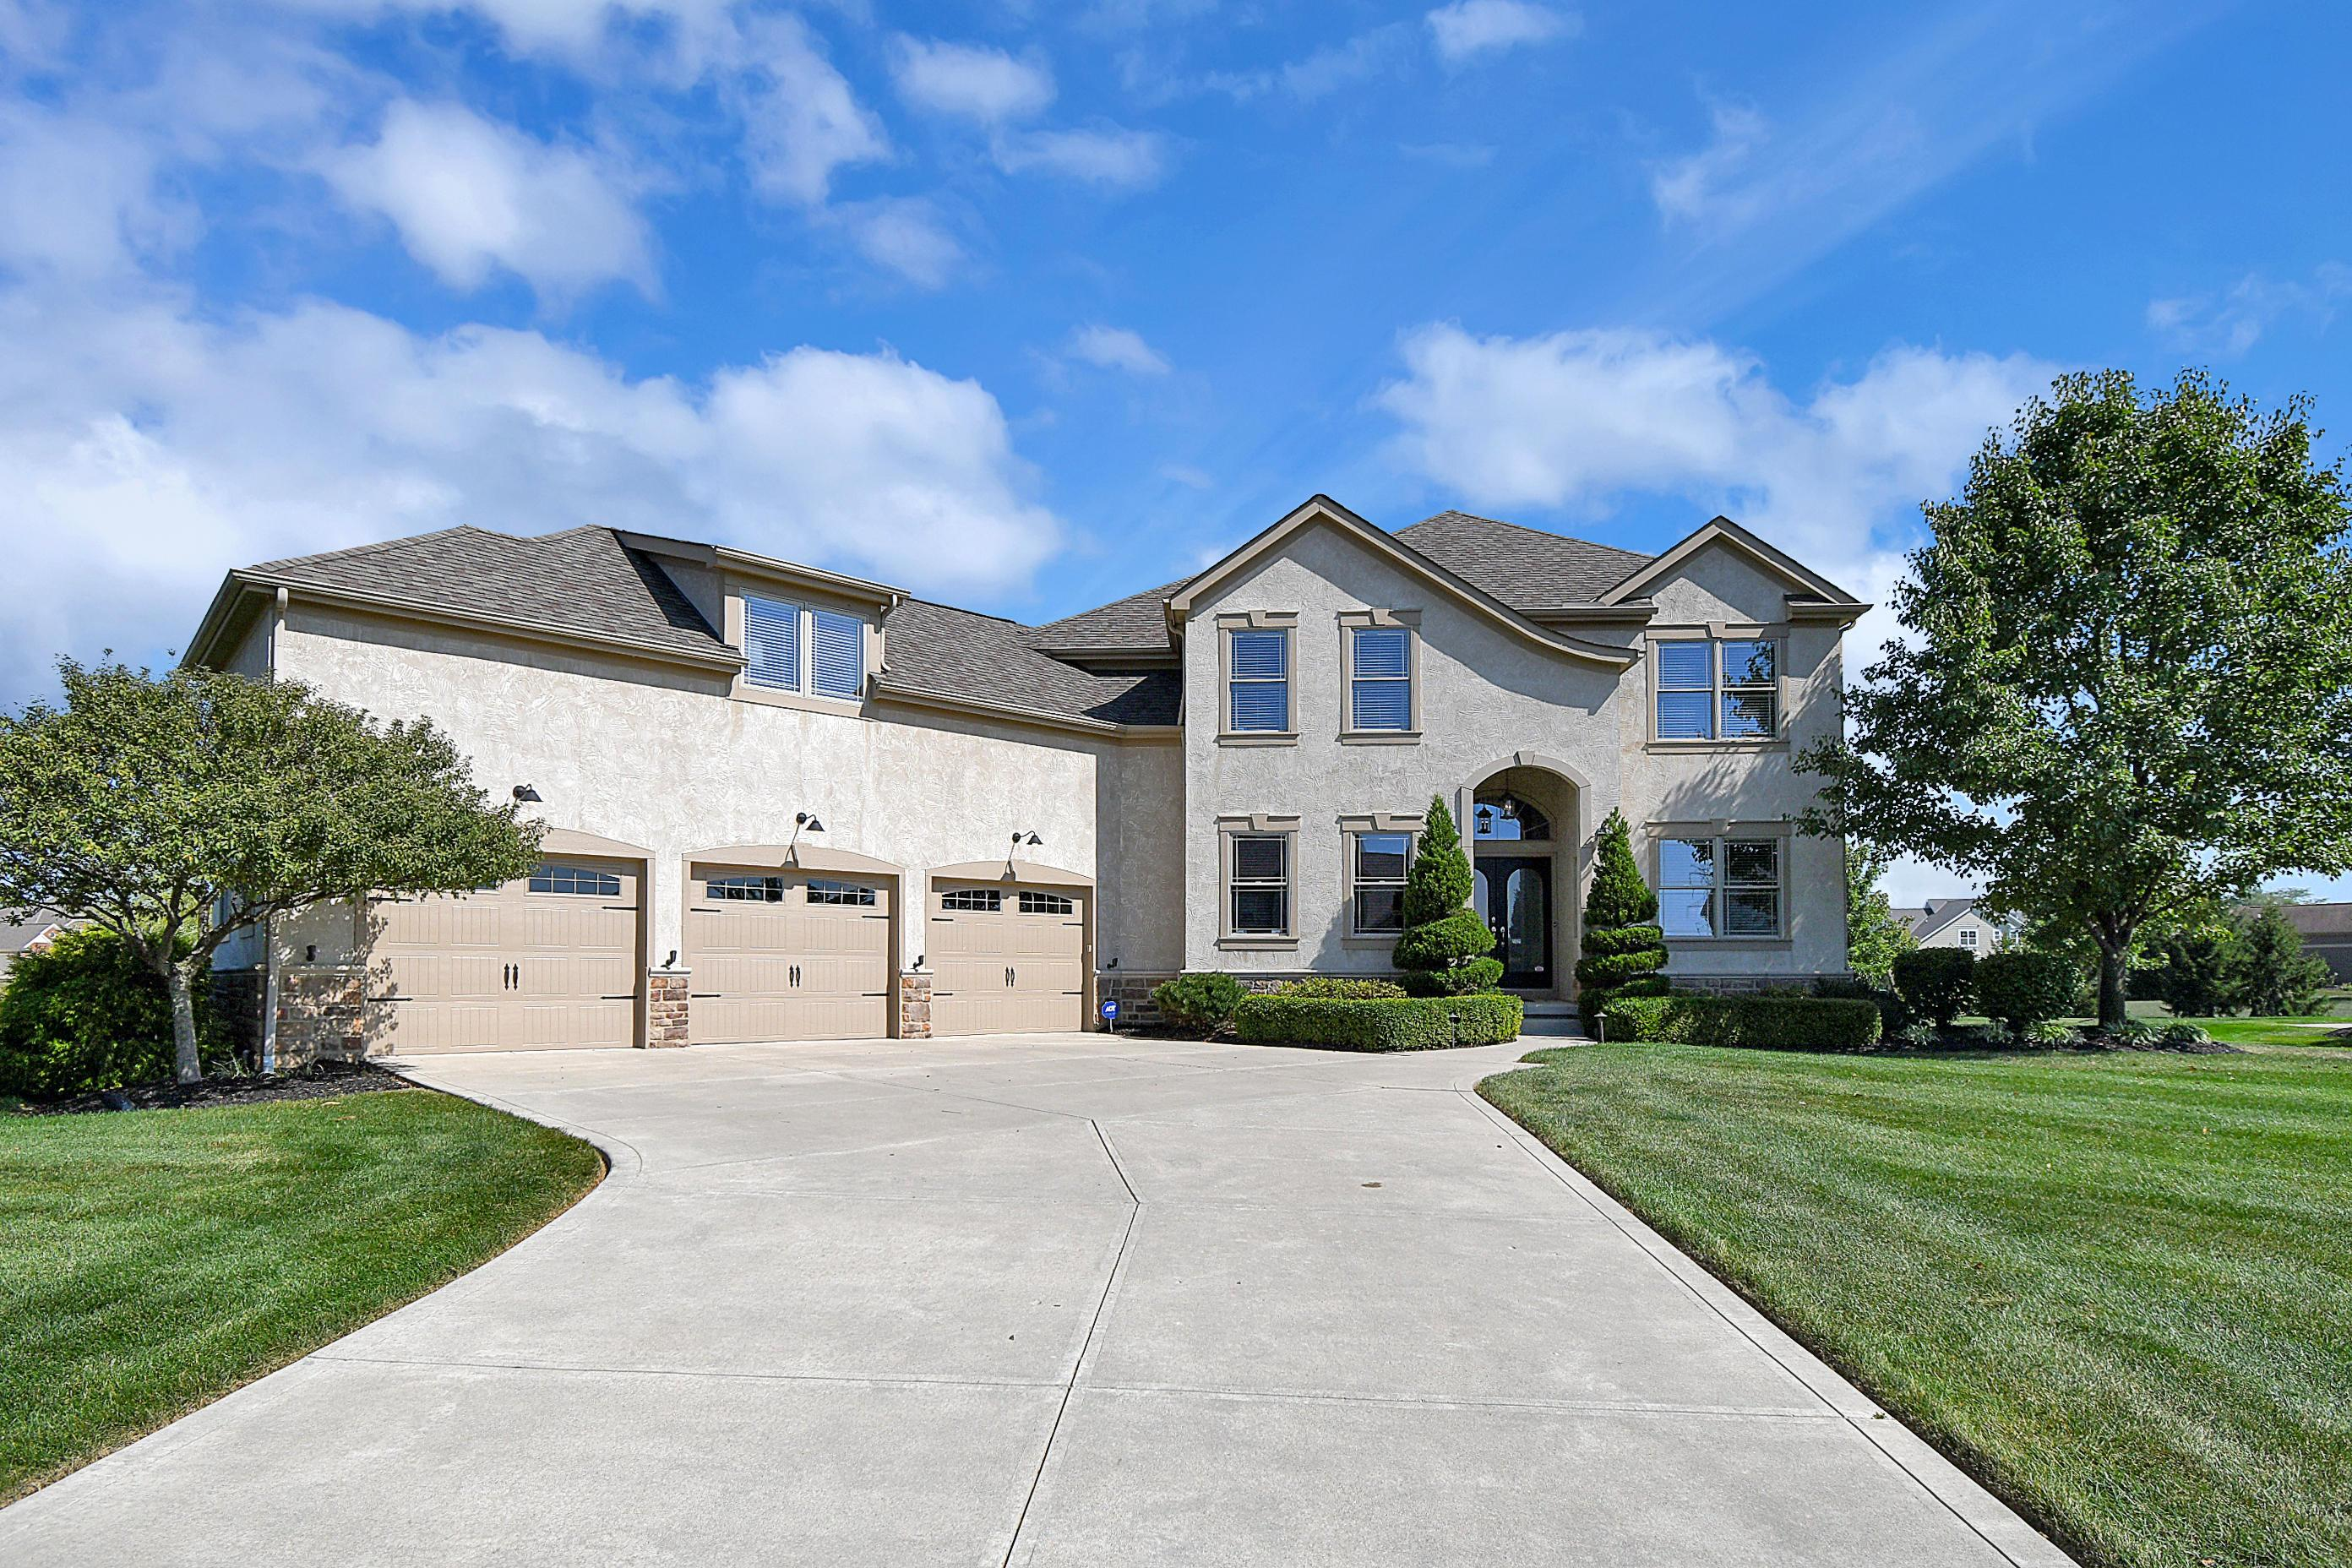 Photo of 4593 Hunters Bend, Powell, OH 43065